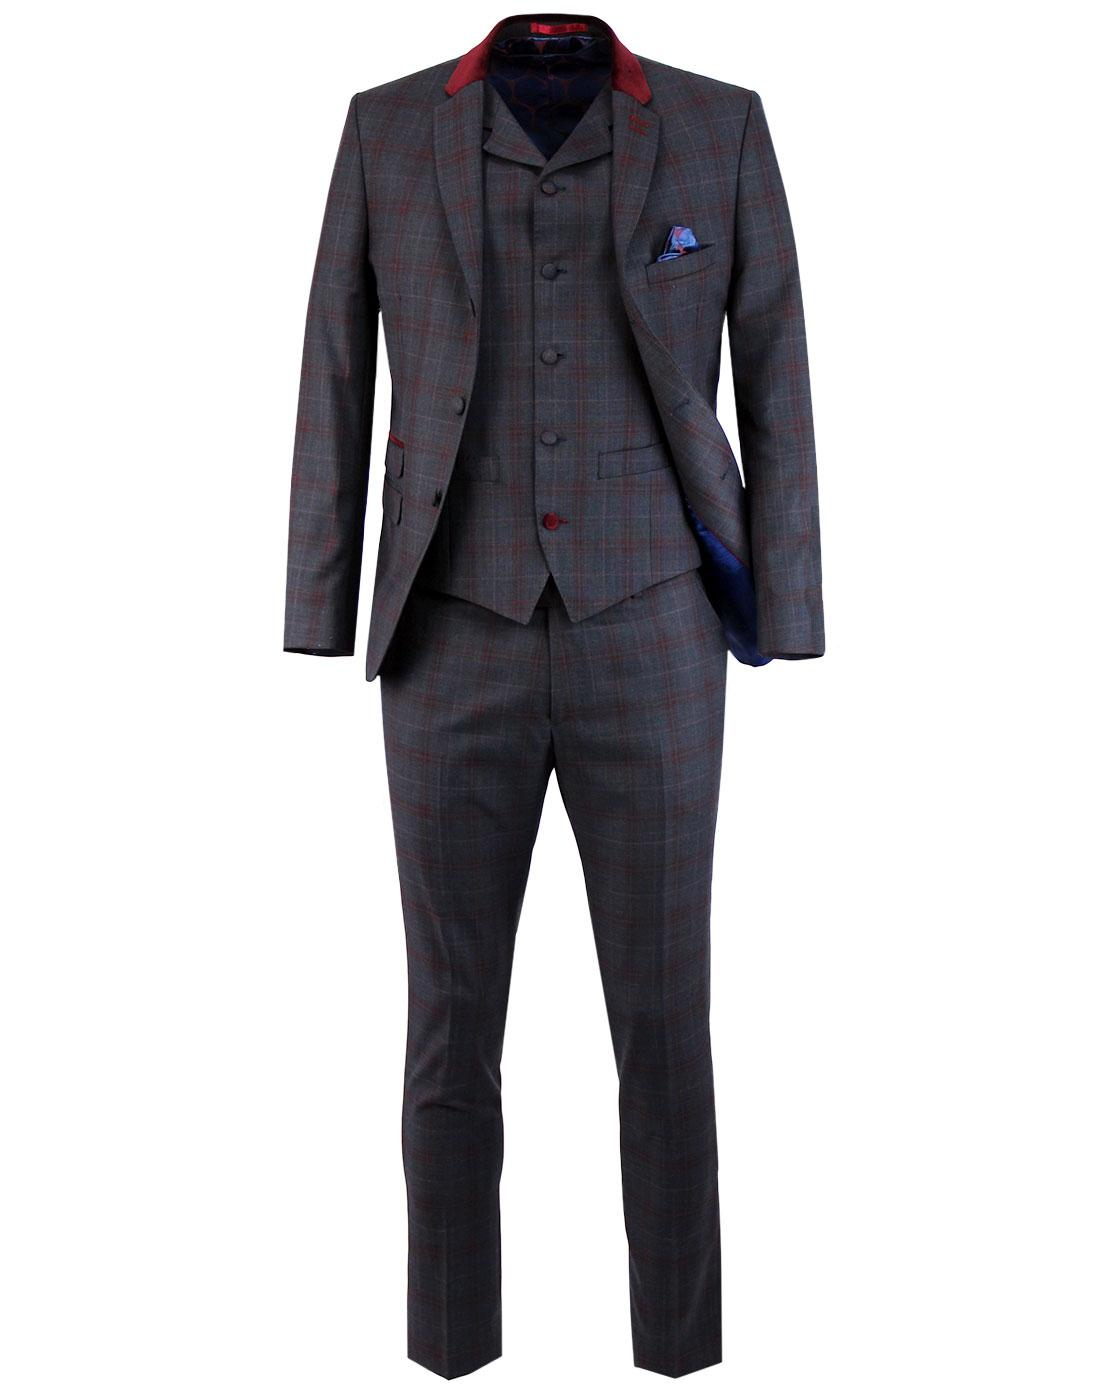 MADCAP ENGLAND Velvet Collar Plaid Check Mod Suit